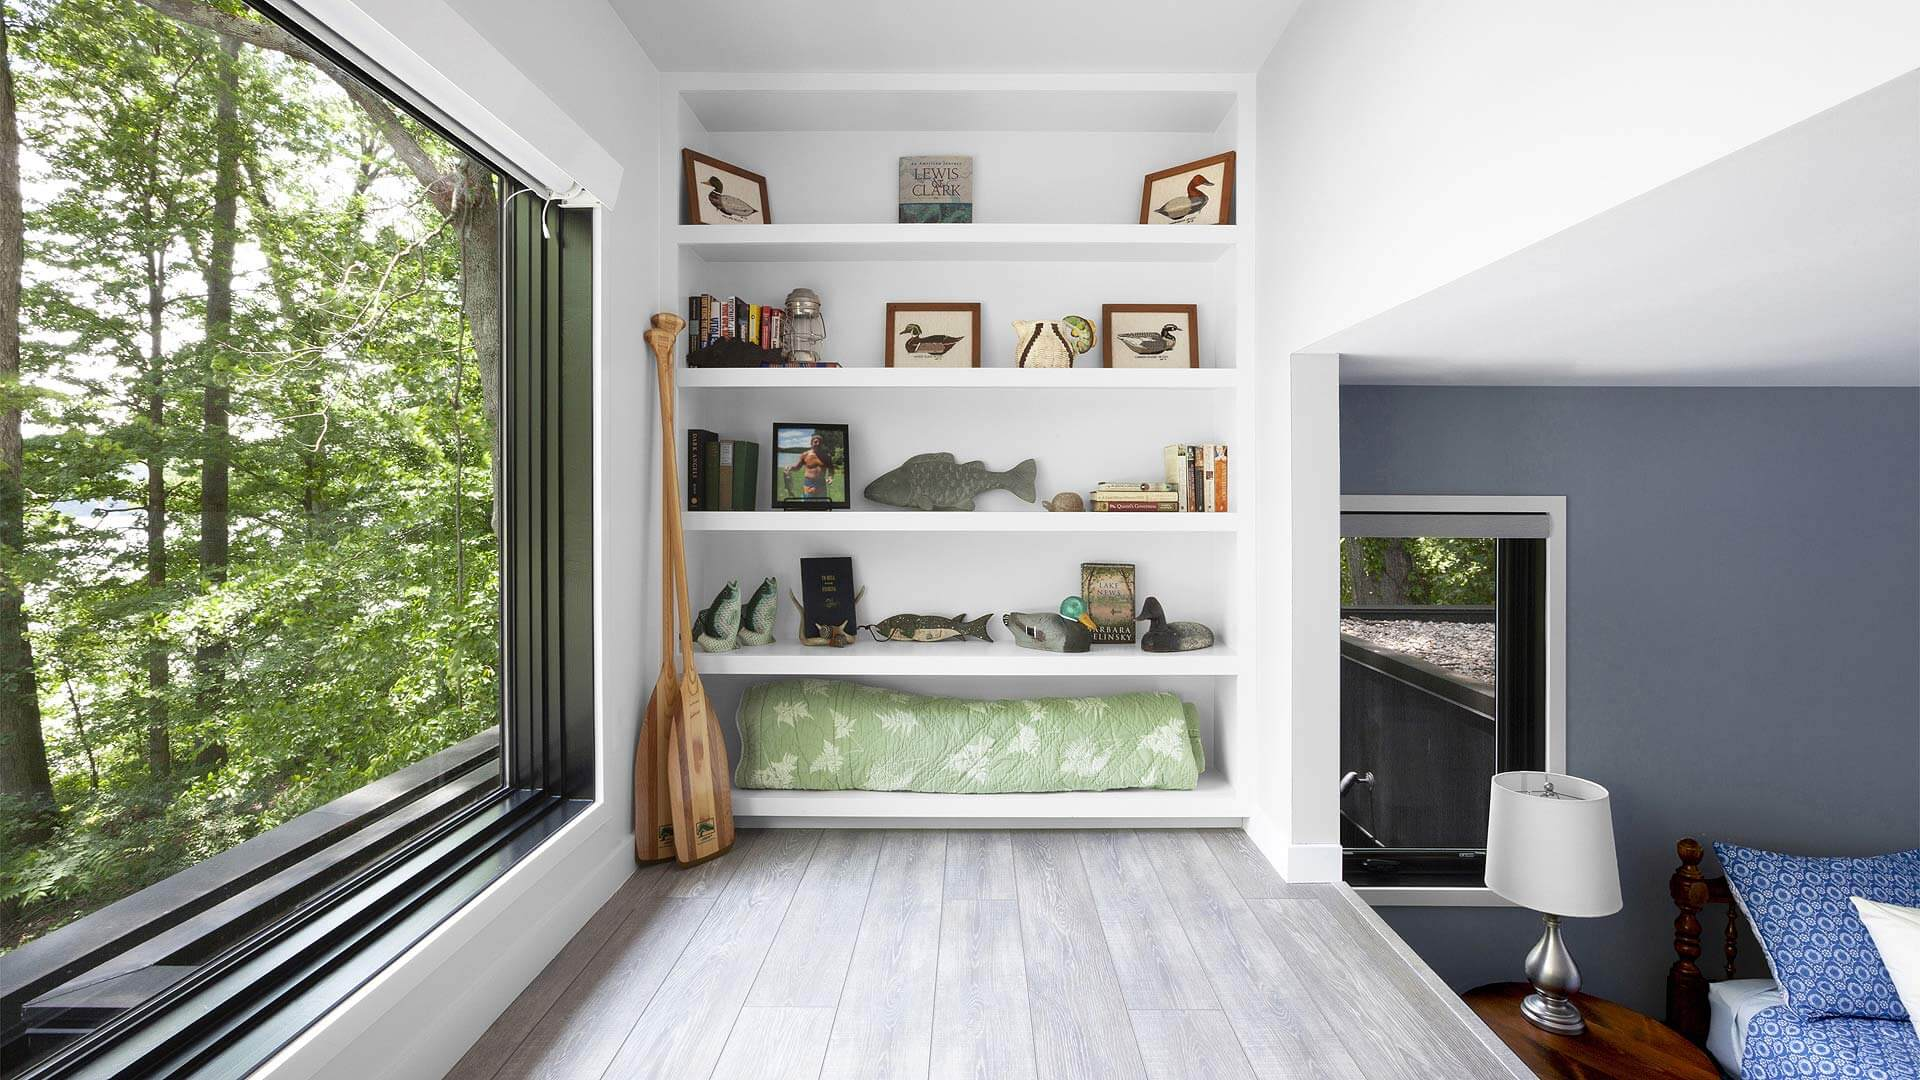 Bedroom loft overlooks lake and includes open shelves for lake themed accessories - Lakeside Modern Cottage (H-LODGE) - Unionville, Indiana, Lake Lemon